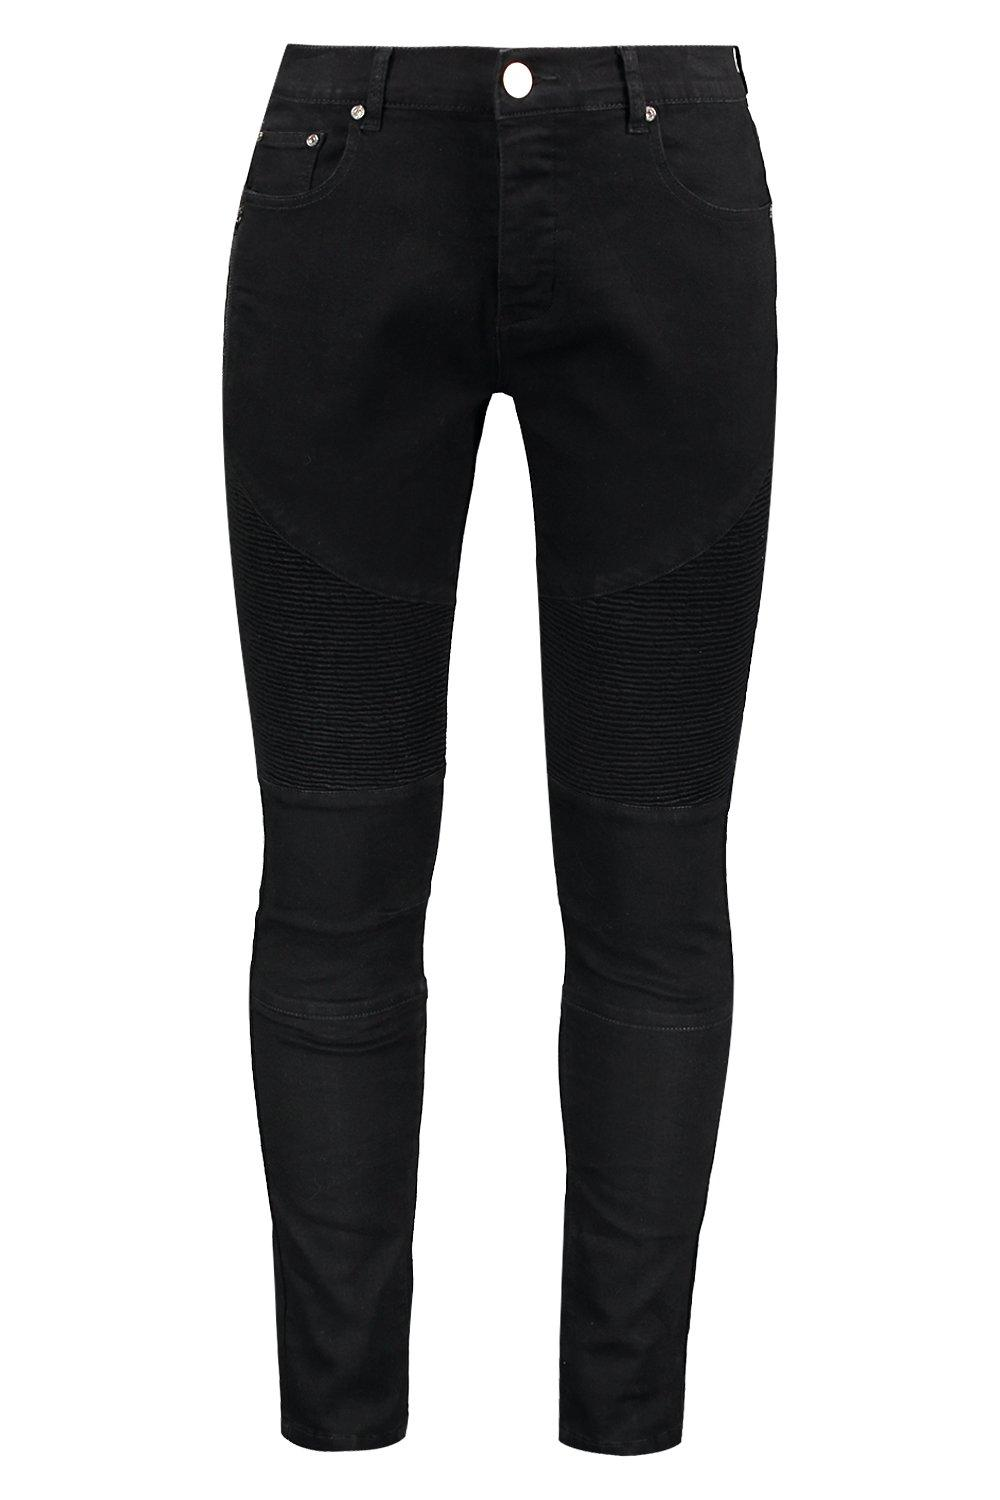 boohooMAN black Skinny Fit Biker Jeans with Side Zip